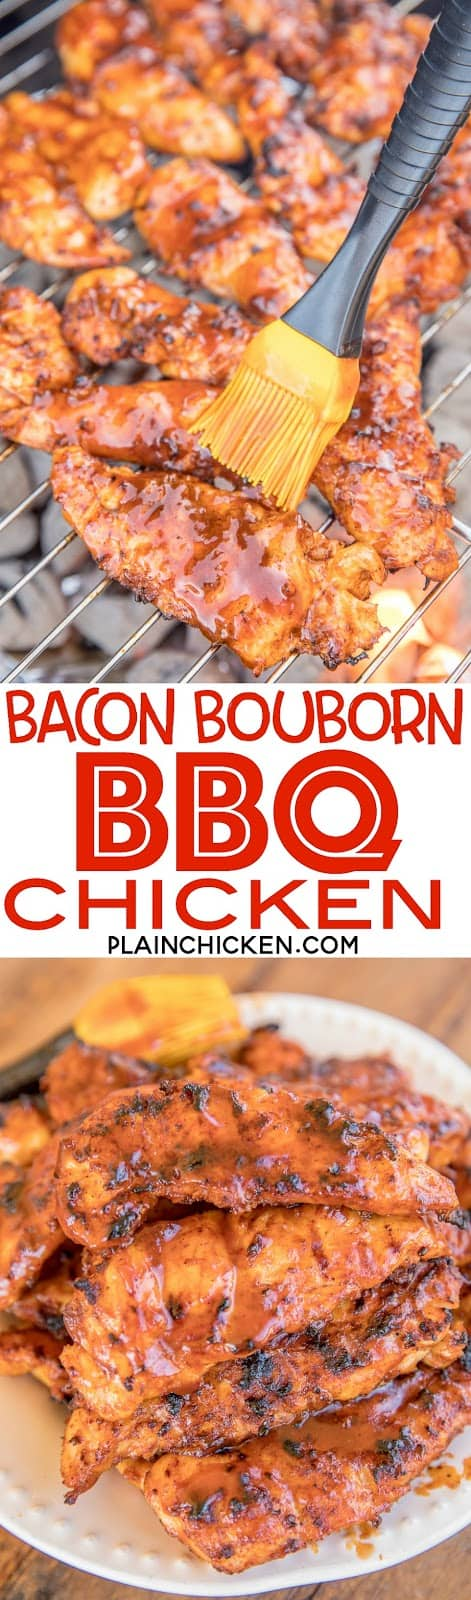 Bacon Bourbon BBQ Chicken - THE BEST chicken EVER! Chicken coated in a BBQ Bacon paste and brushed with Bourbon BBQ sauce. Chicken, bacon, bourbon, bbq sauce, salt, garlic powder, onion powder, pepper, paprika, brown sugar. We made this twice in one week it was SO good. Even our picky eaters asked for seconds! Make this!! #grilling #chicken #grilledchicken #bacon